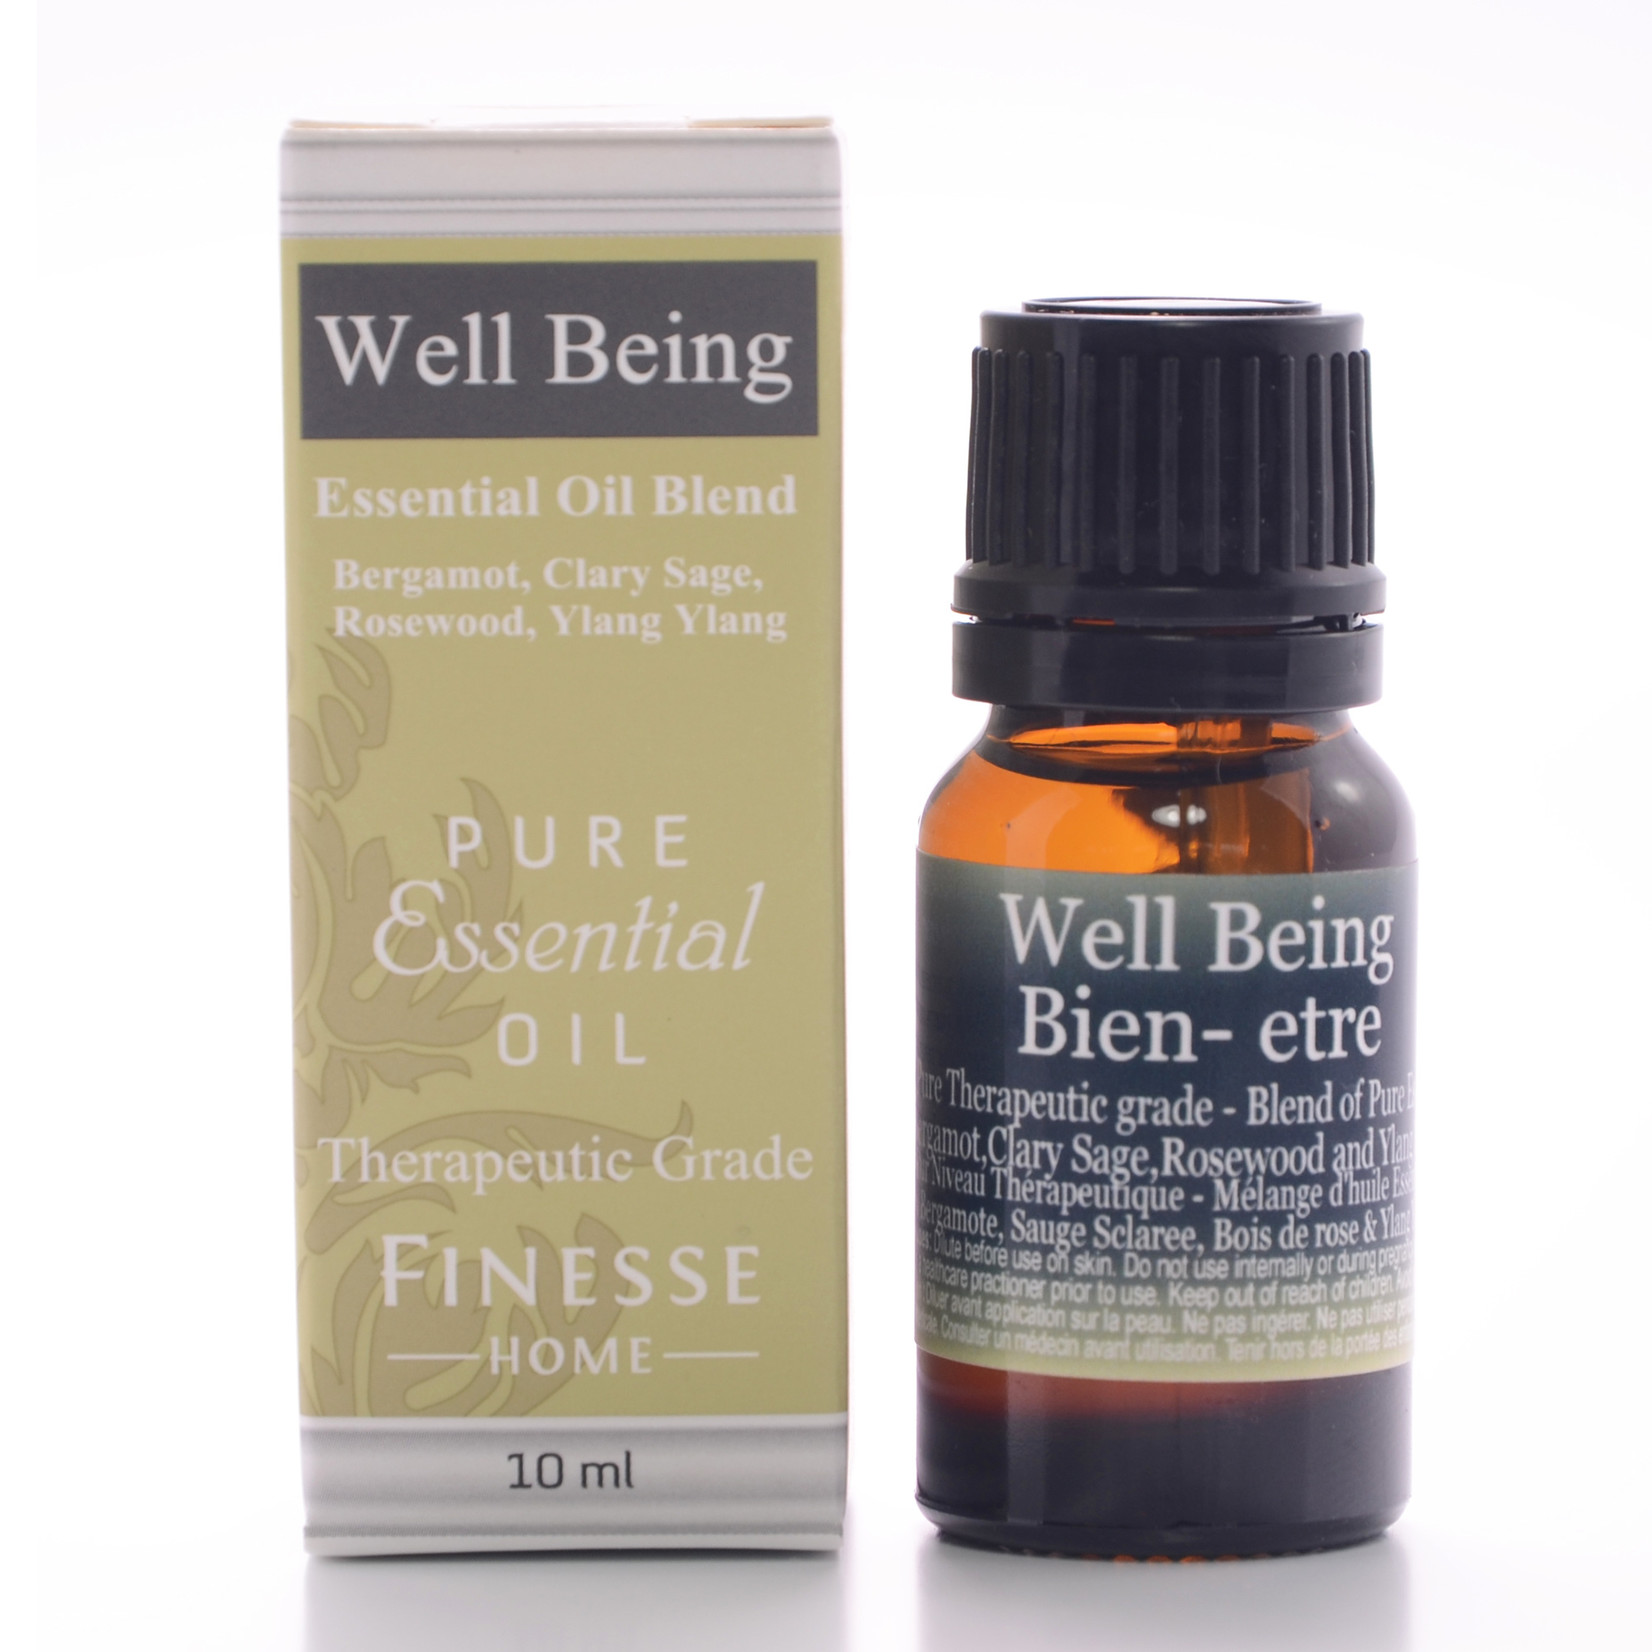 Finesse Home ~ Well Being Essential Oil Blend